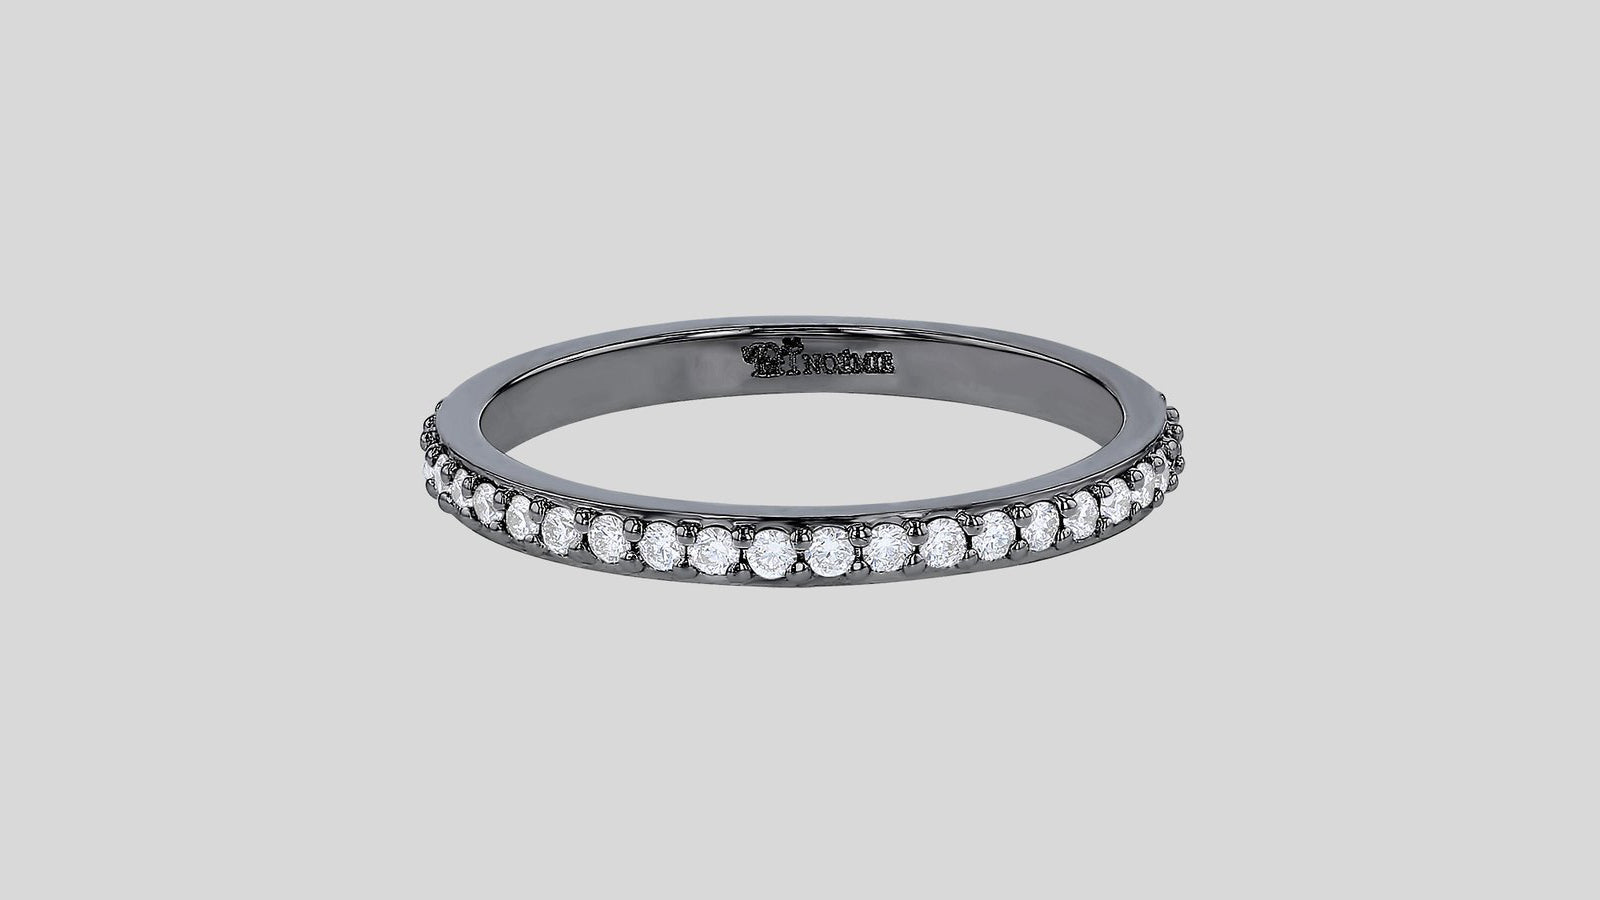 The Lab Grown Diamond Eternity Band Ring